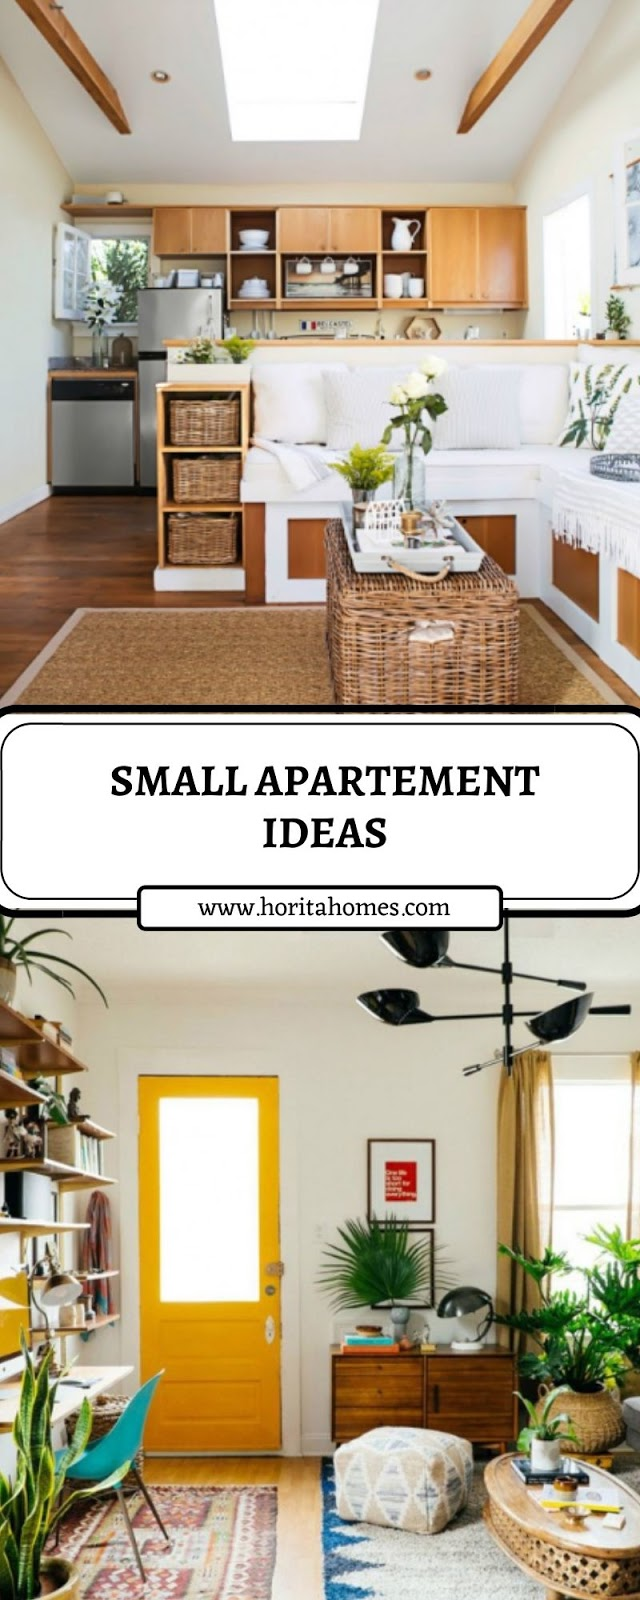 SMALL APARTEMENT IDEAS